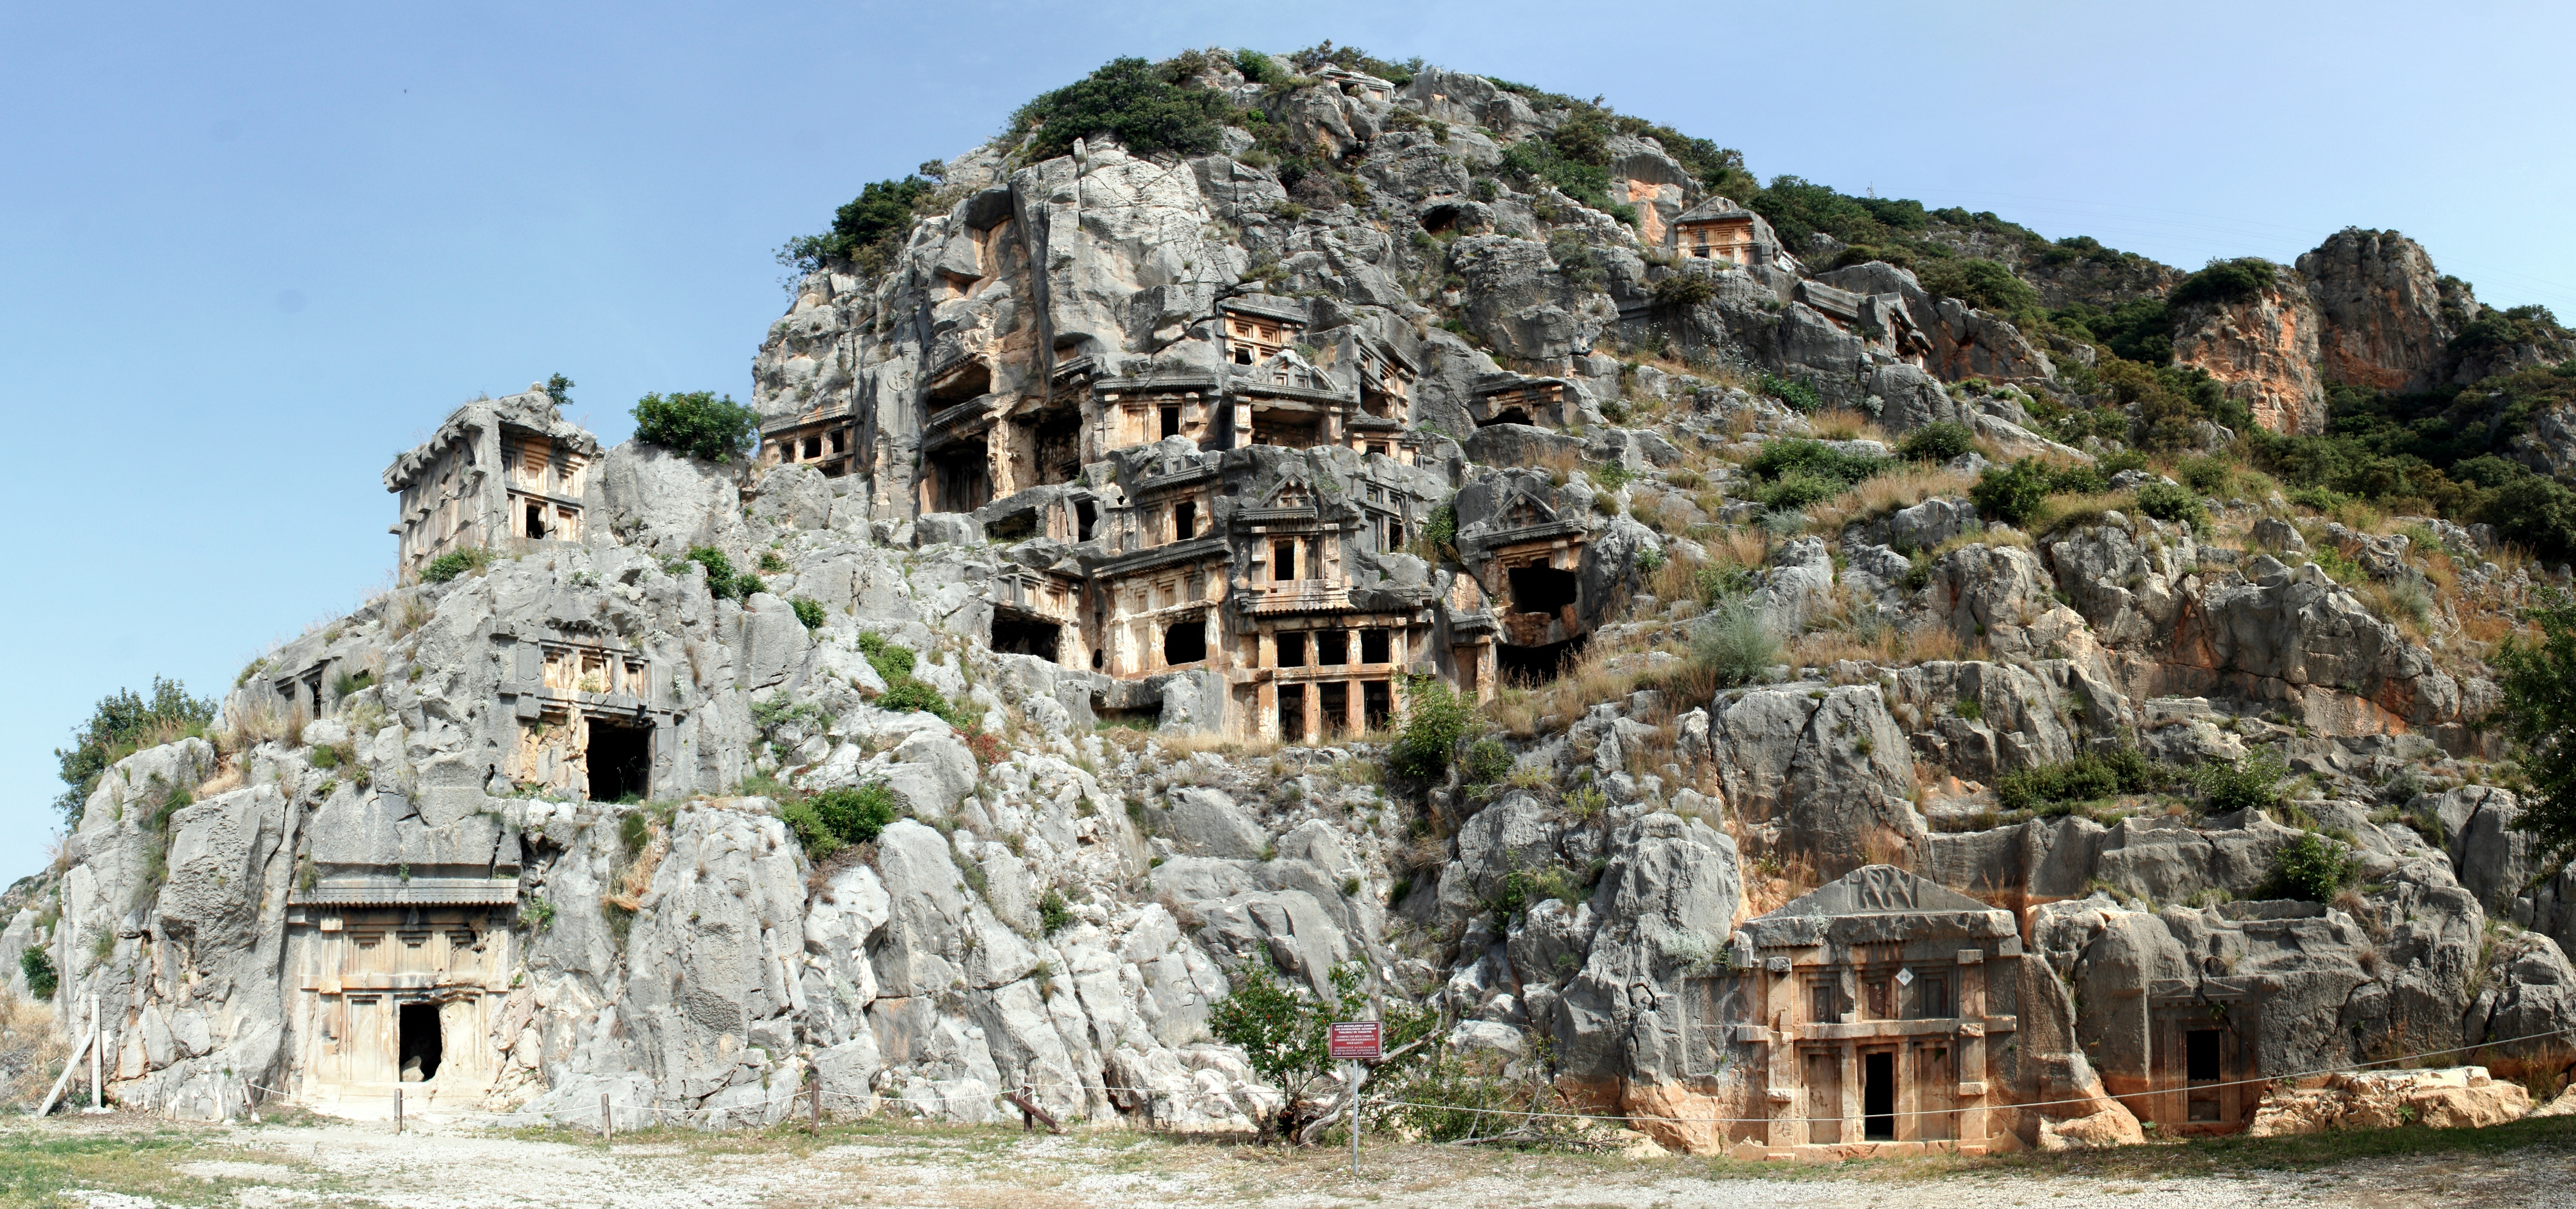 Myra's rock tombs